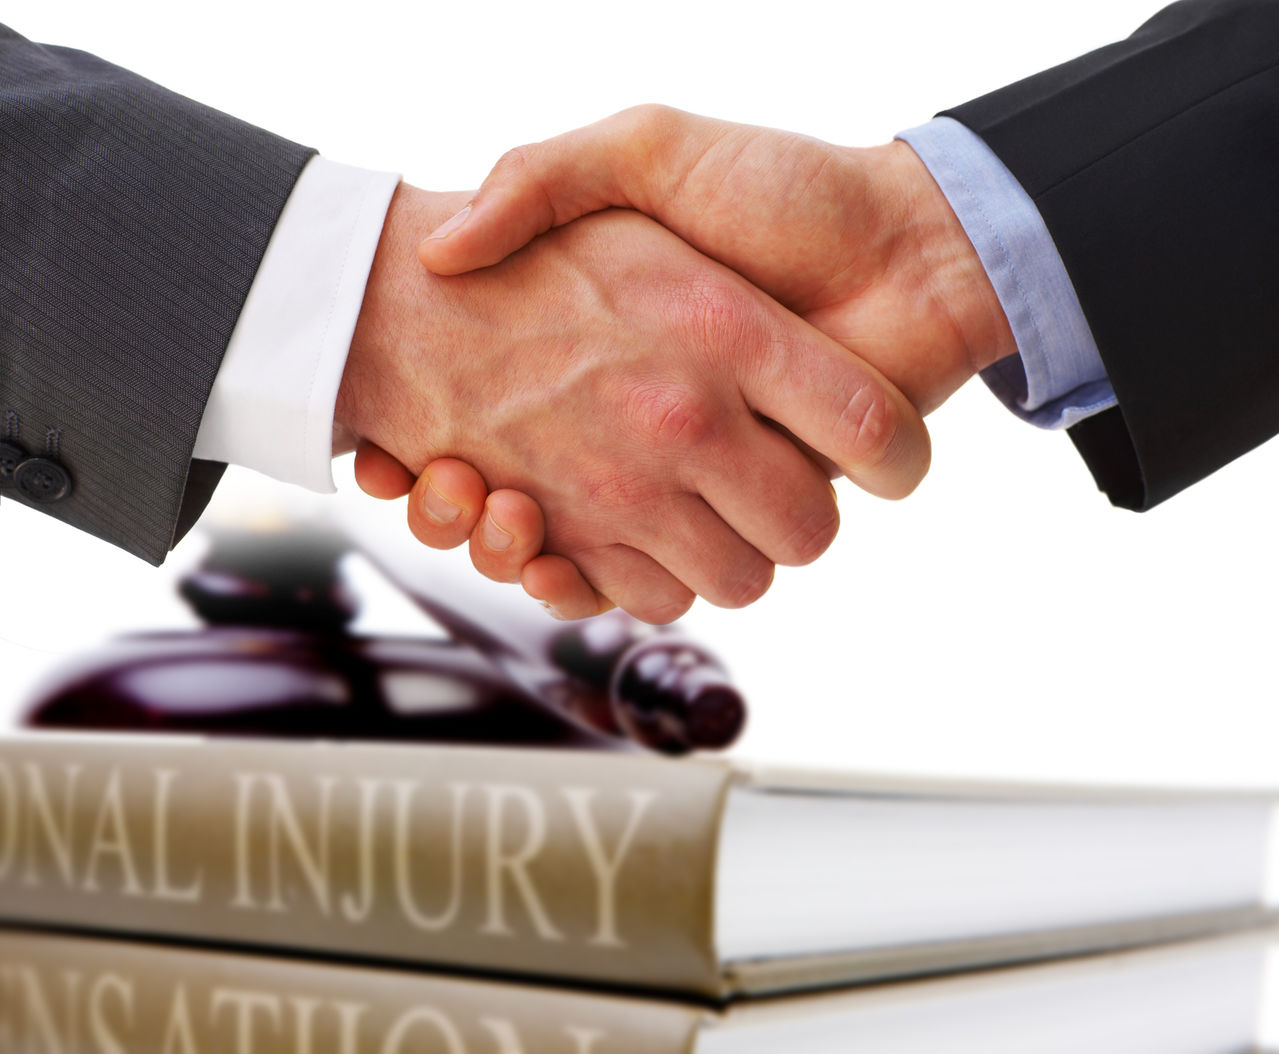 How to Calculate Compensation in a Personal Injury Claim